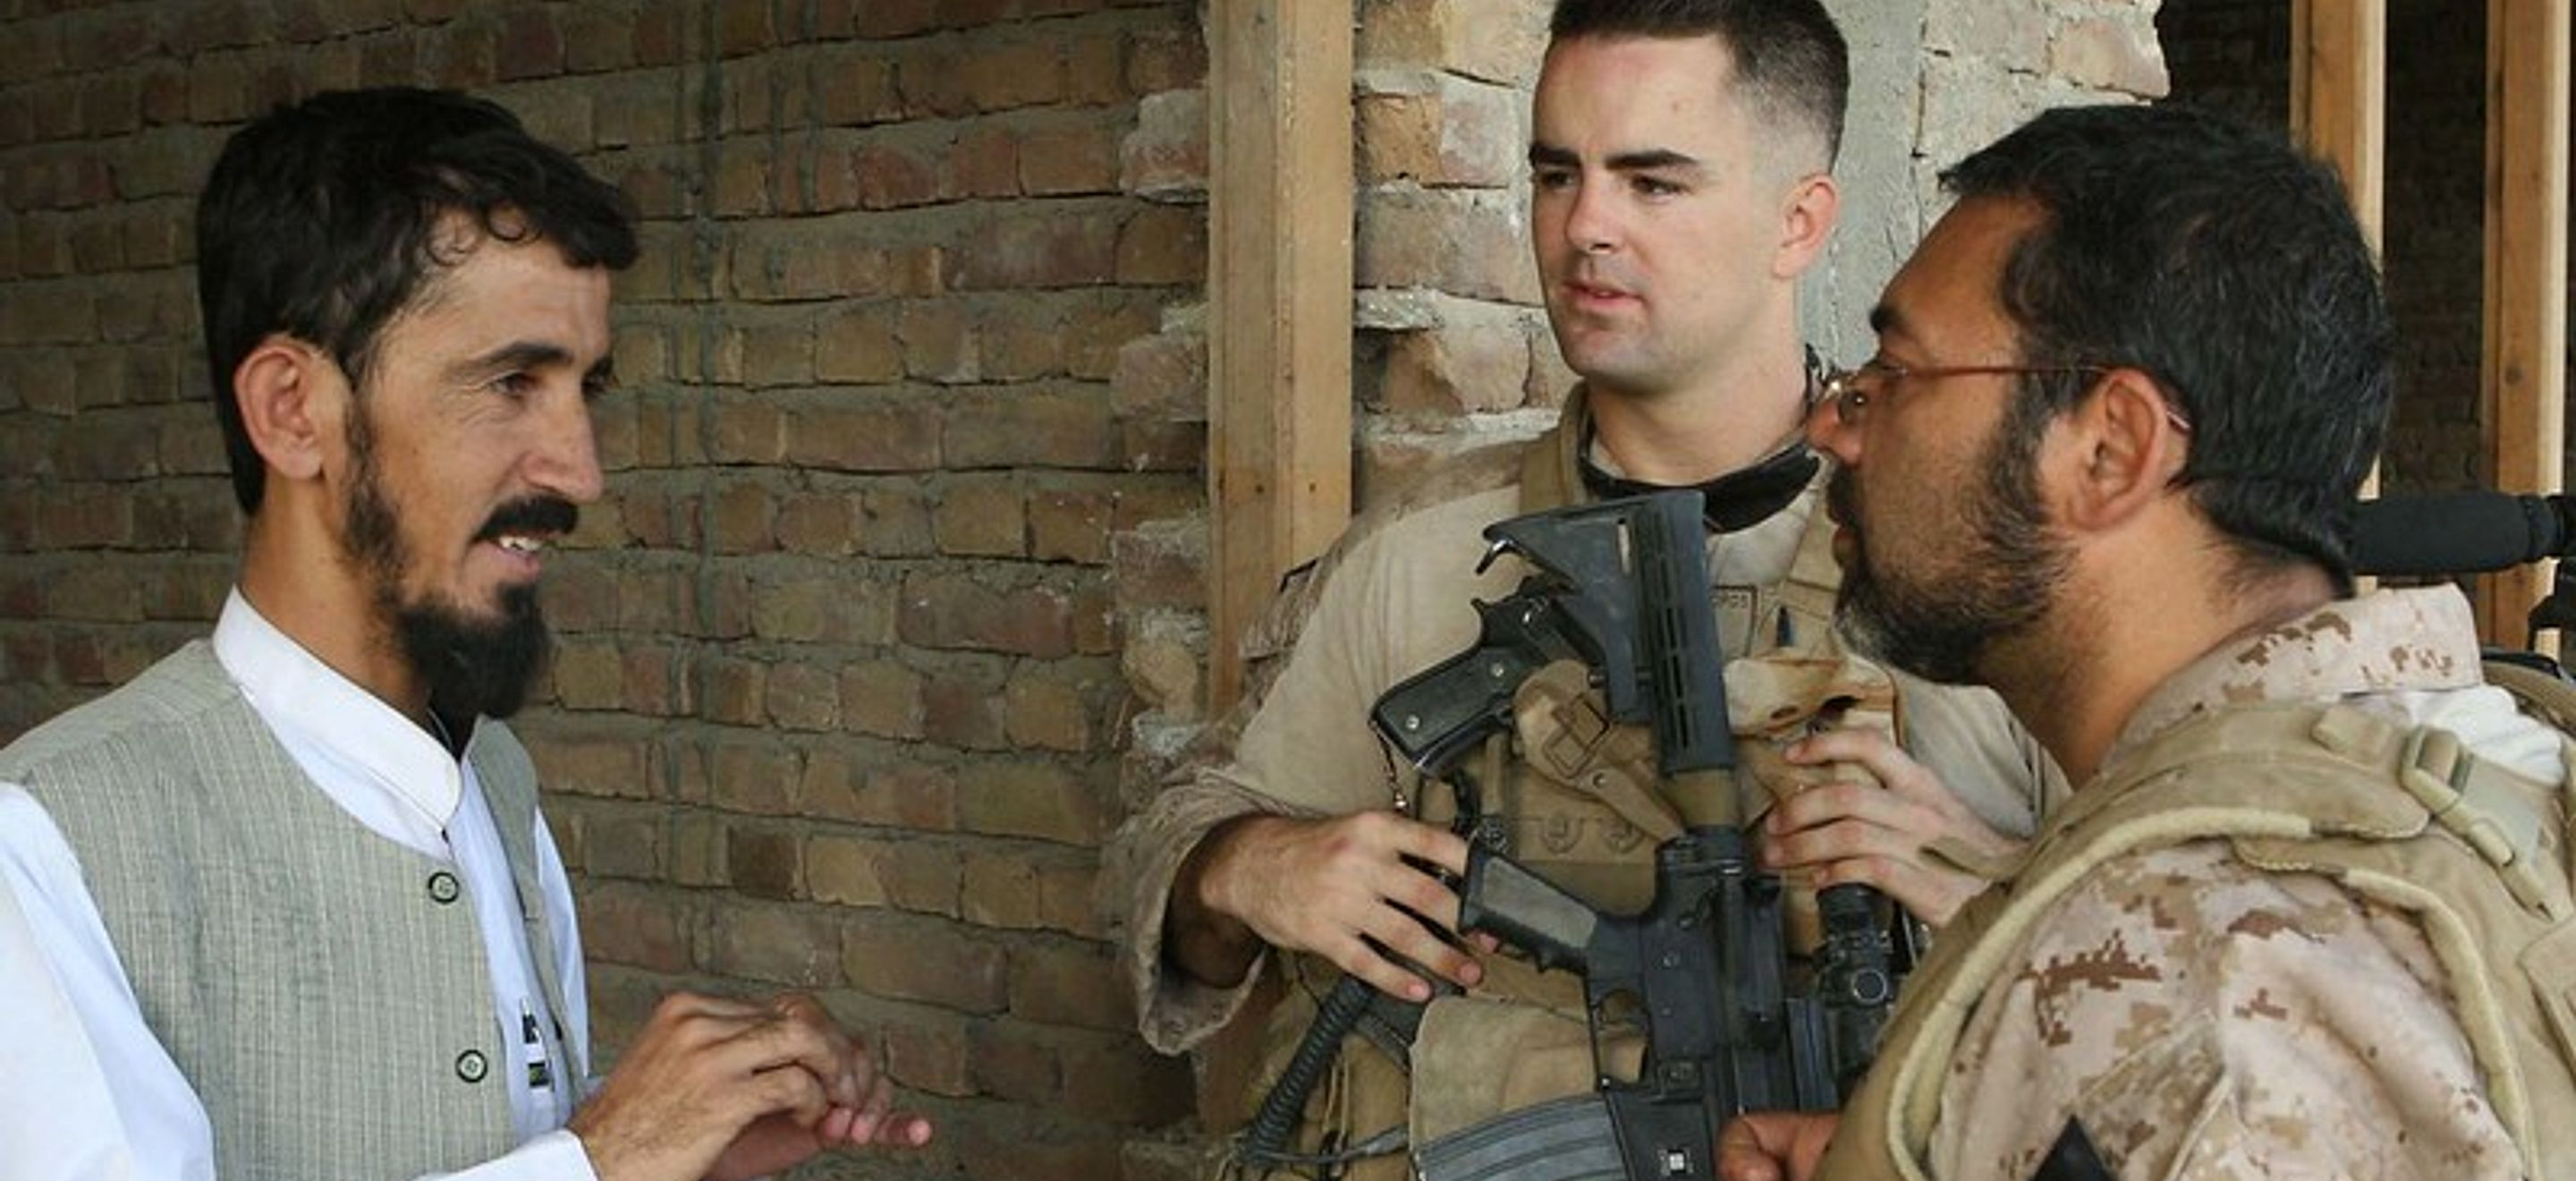 An Afghan interpreter and a U.S. soldier, both dressed in desert fatigues, talk to an Afghan man with a beard and mustache, who wears a white shirt with a banded collar and a light grey vest. The U.S. soldier carries multiple weapons, and the interpreter wears glasses and a protective vest. They are standing in front of a brick building.